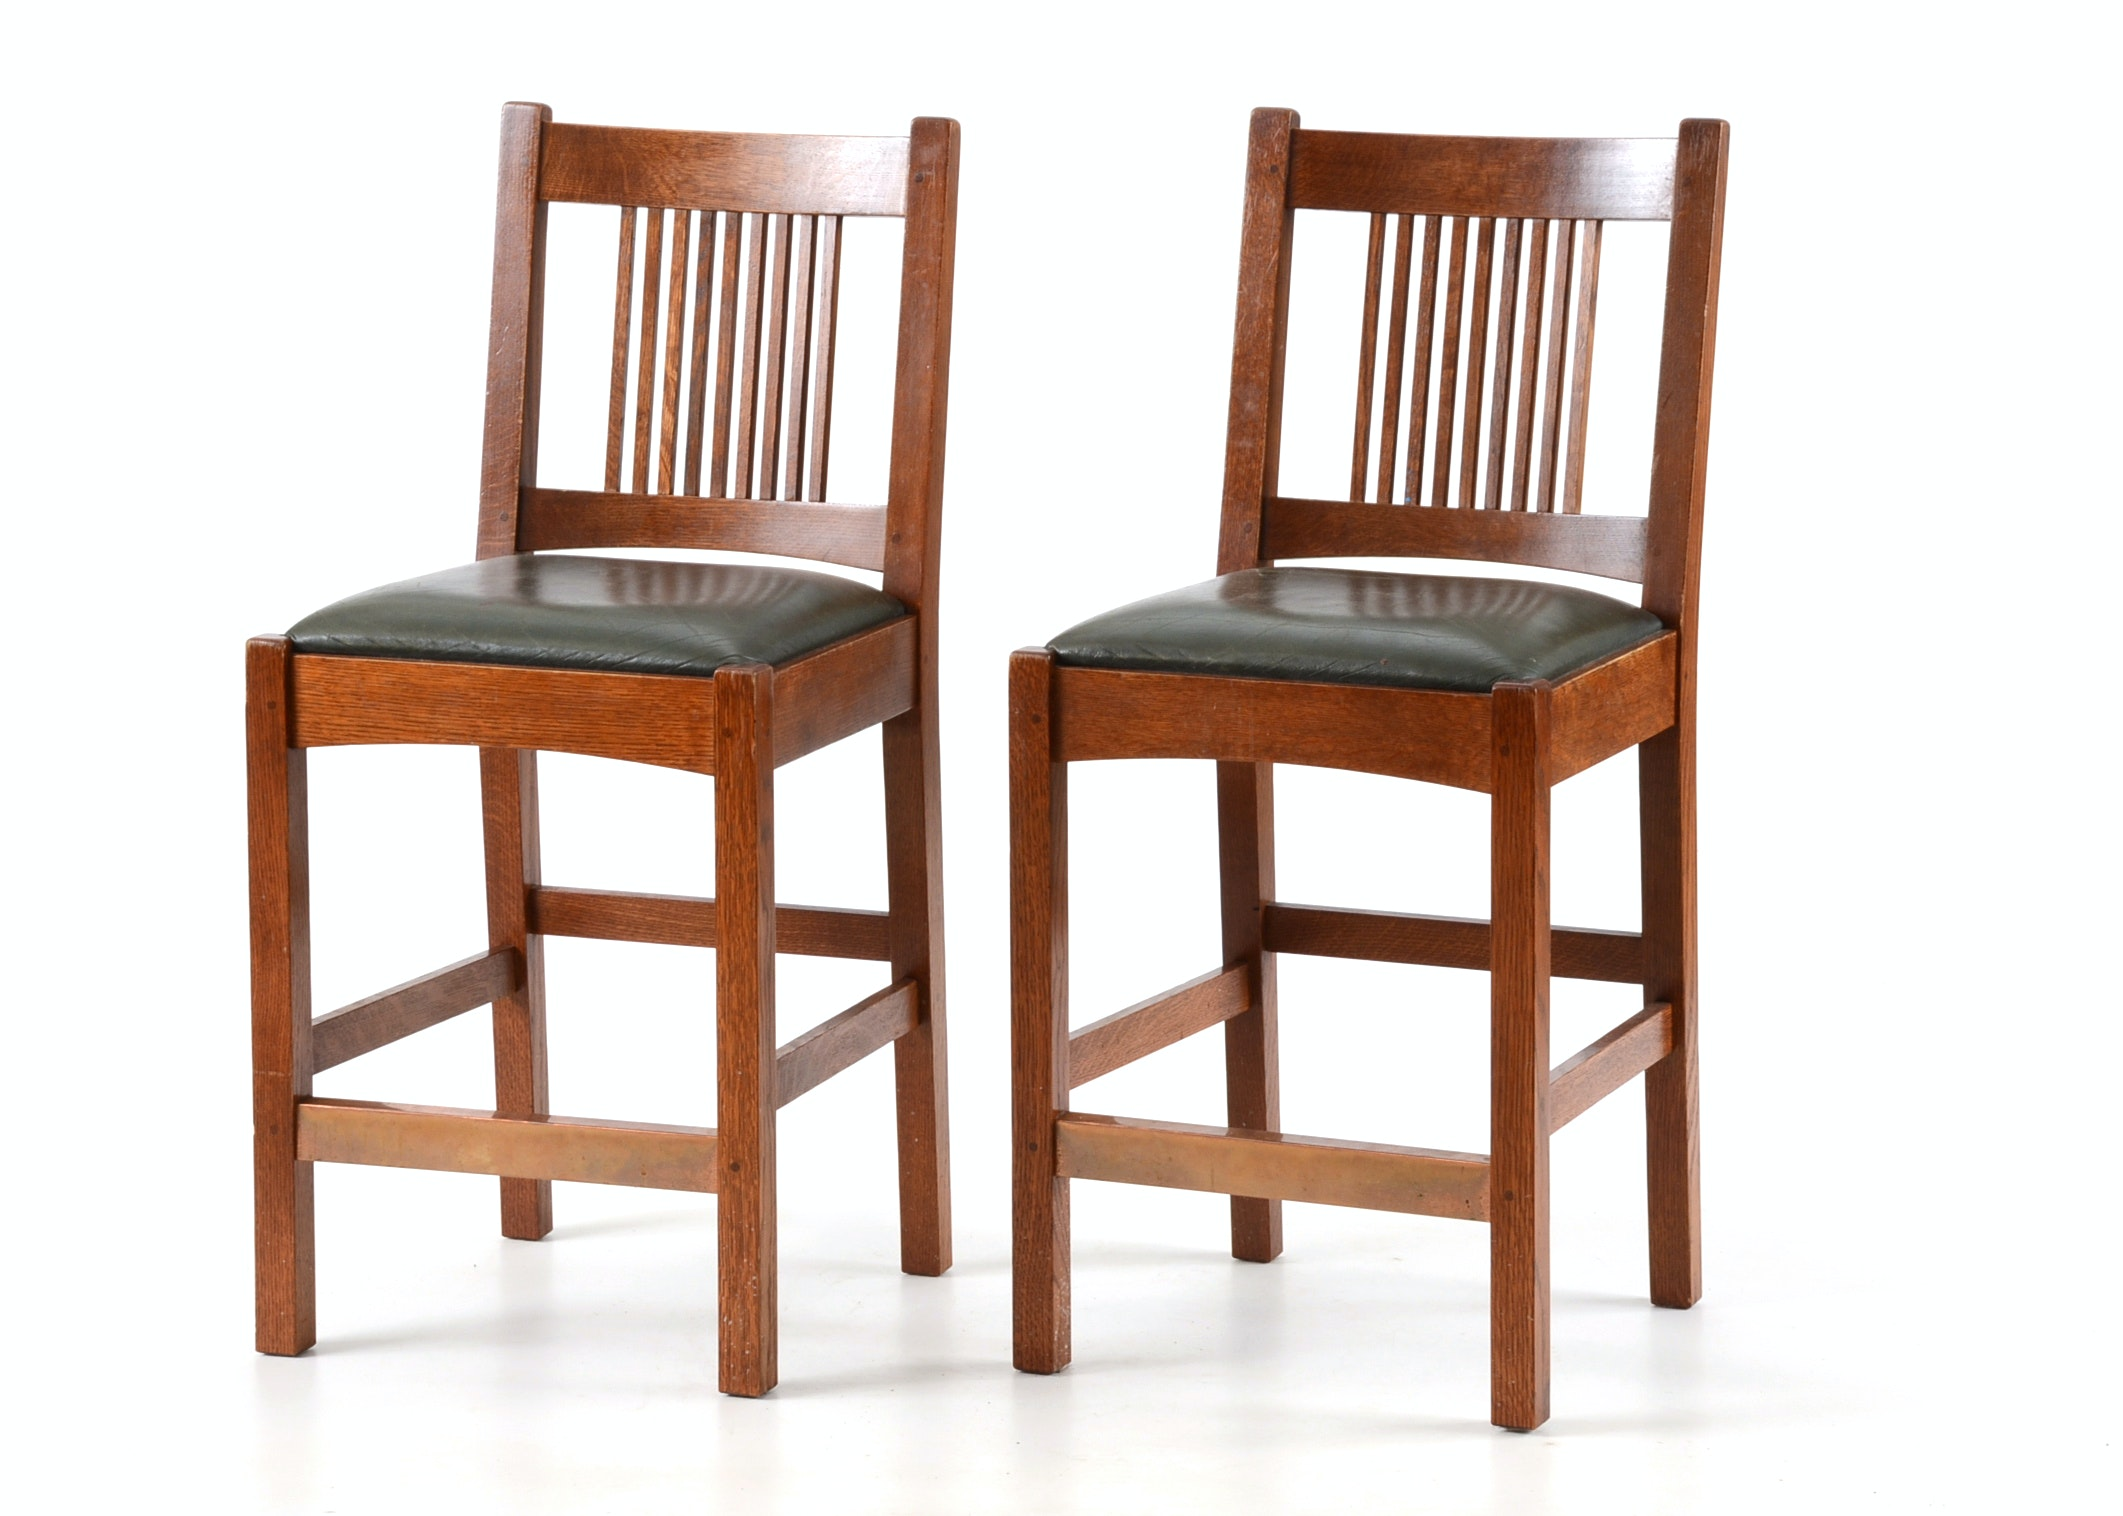 Contemporary Stickley Oak Bar Stools EBTH : JJM1856JPGixlibrb 11 from ebth.com size 1400 x 1000 jpeg 154kB